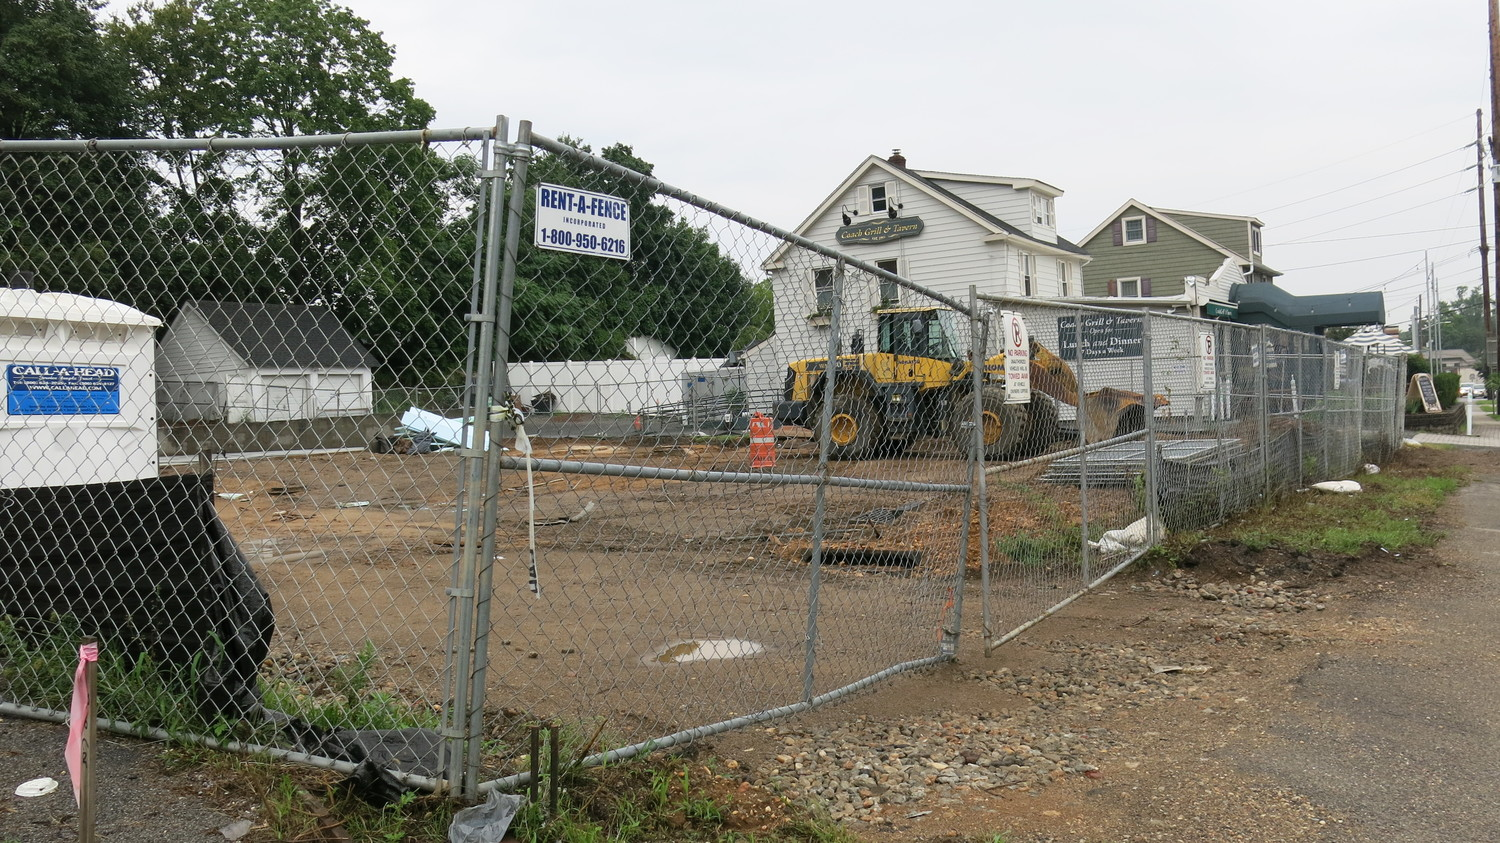 Work is under way on a 7-Eleven on Route 106 in Oyster Bay, next to Coach Grill.